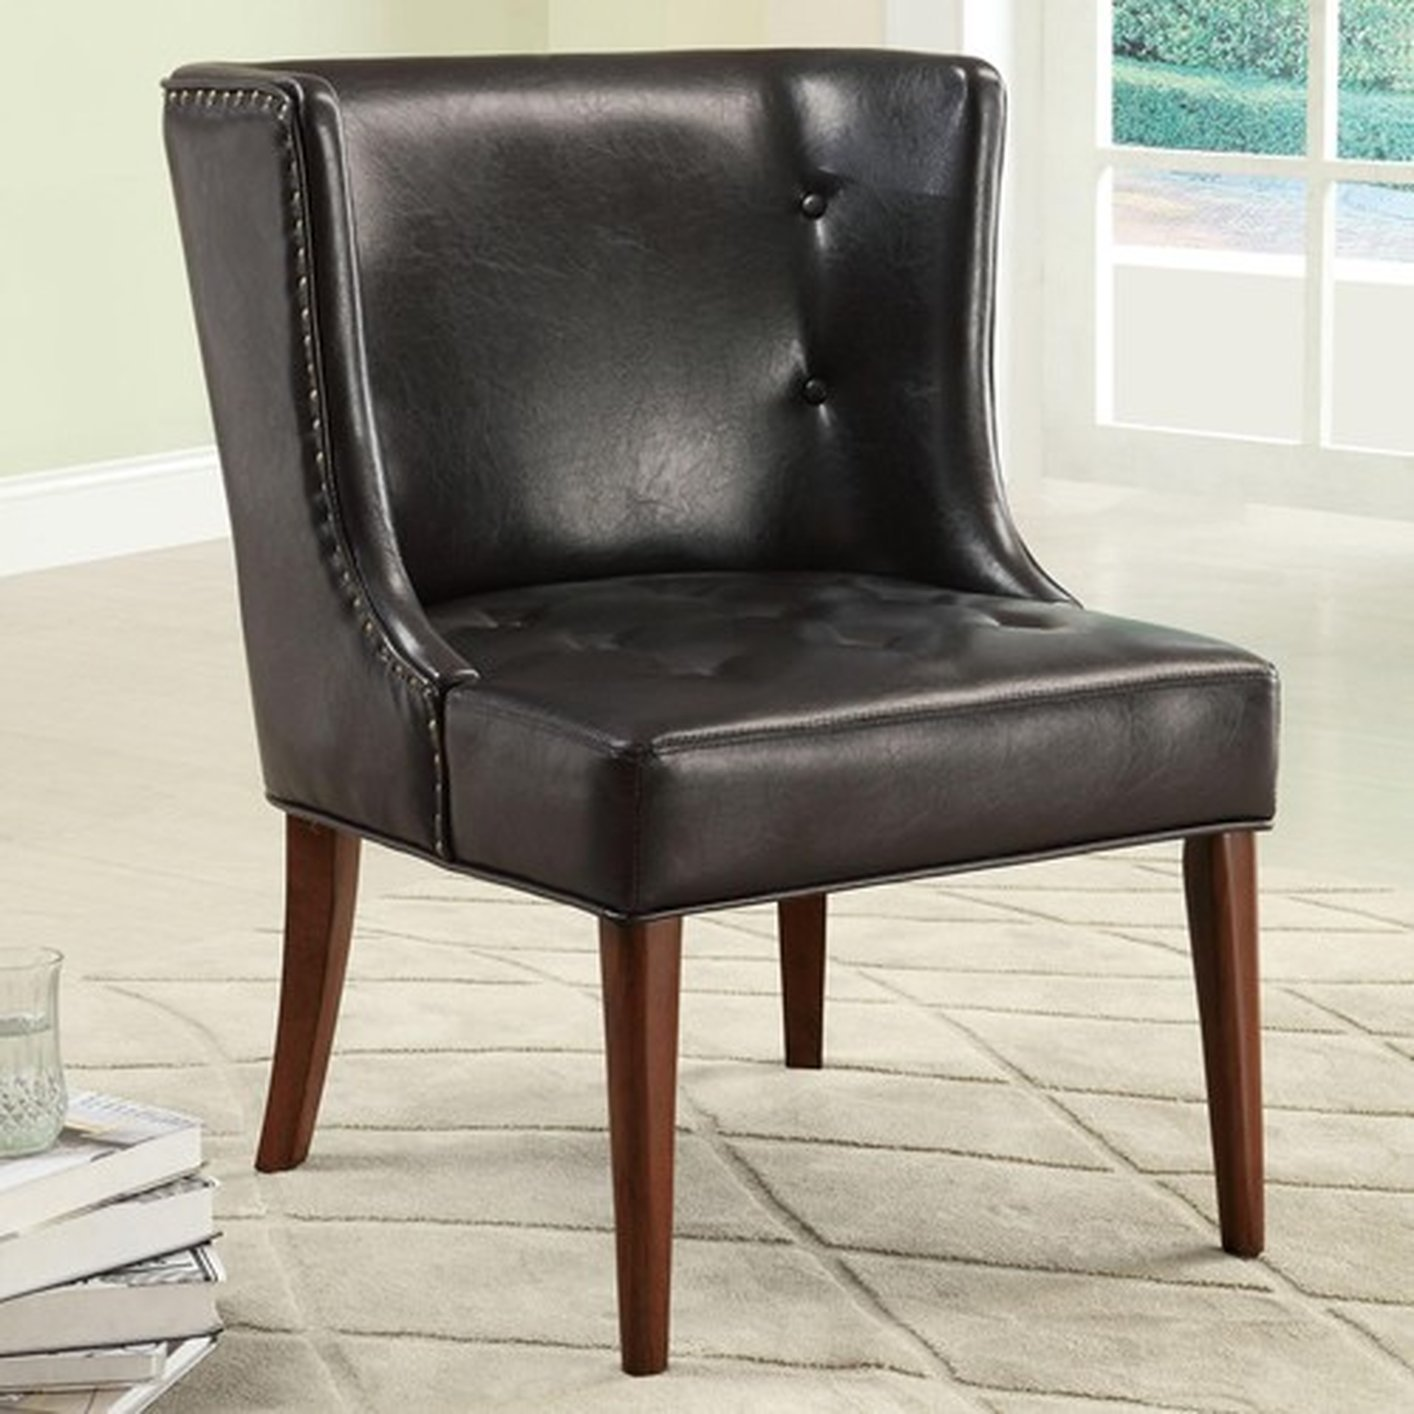 Black Leather Accent Chair  StealASofa Furniture Outlet